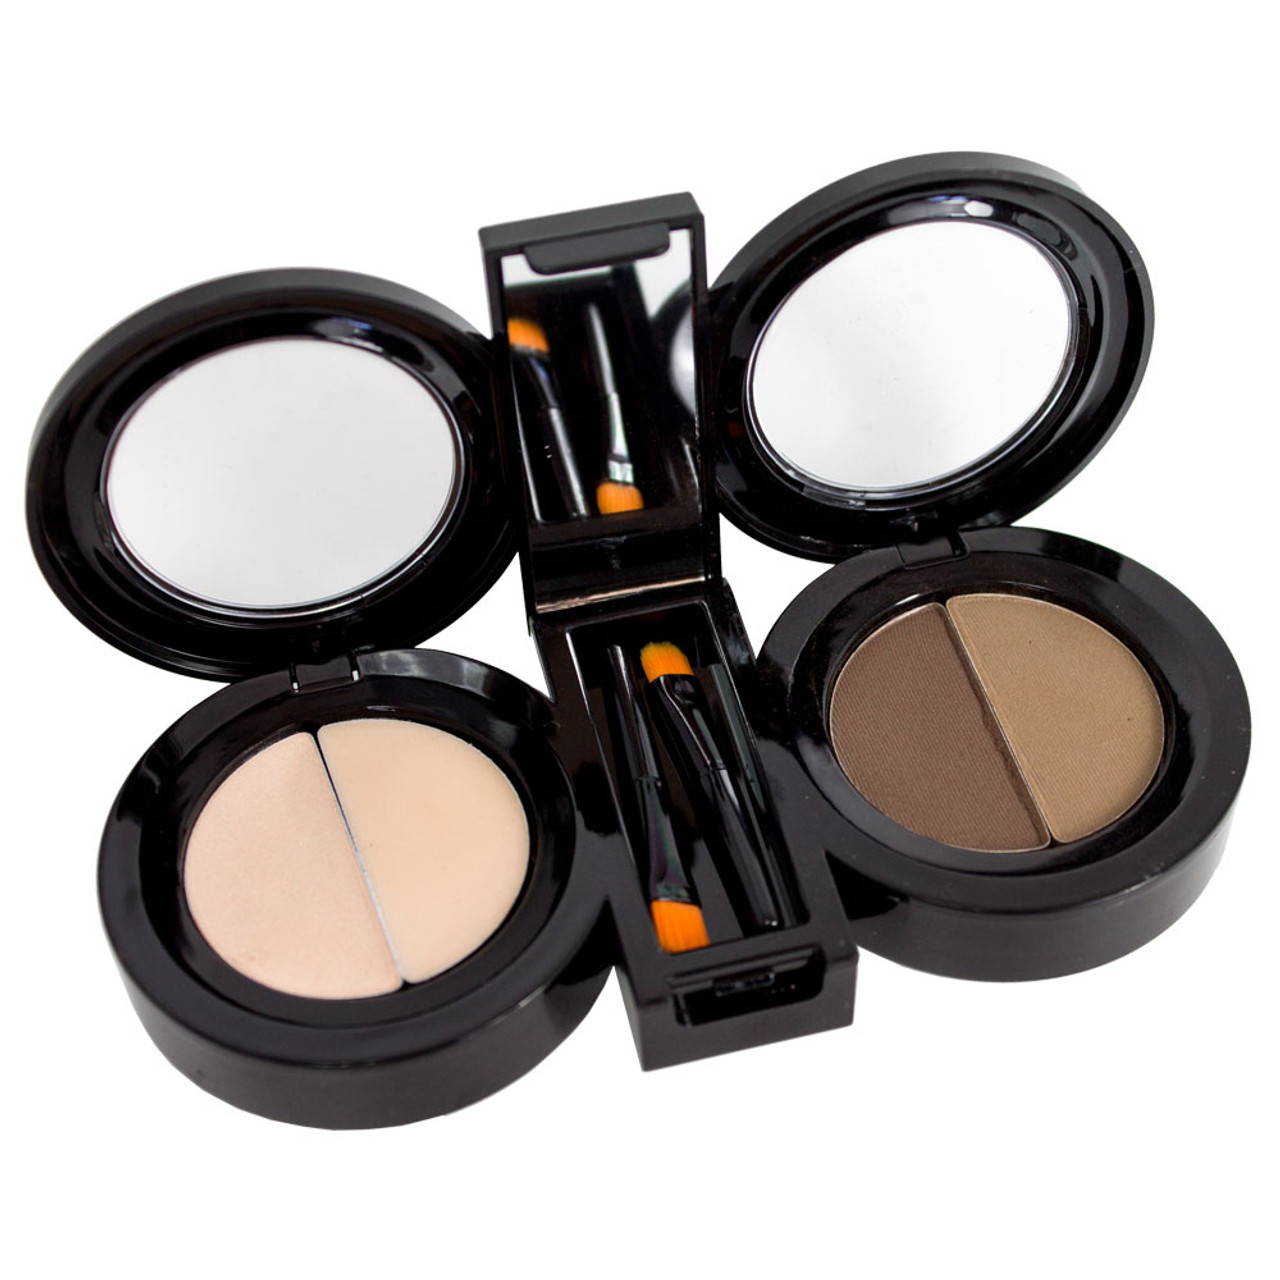 Hard Candy Brows Now Ultimate All In One Brow Powder Kit